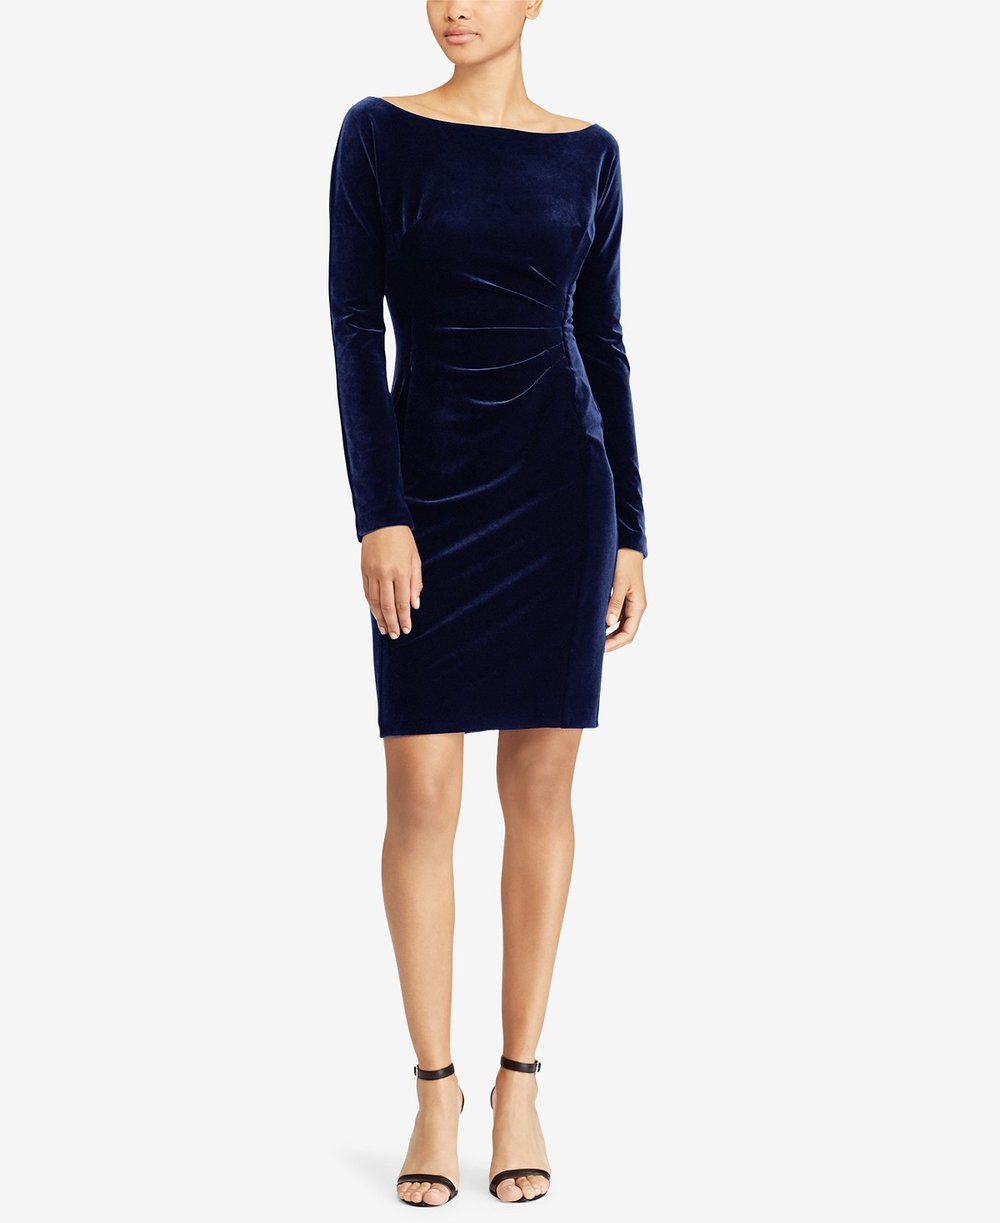 Lauren Ralph Lauren  Petite Velvet Sheath Dress. Macy's. Was: $160. Now: $95.